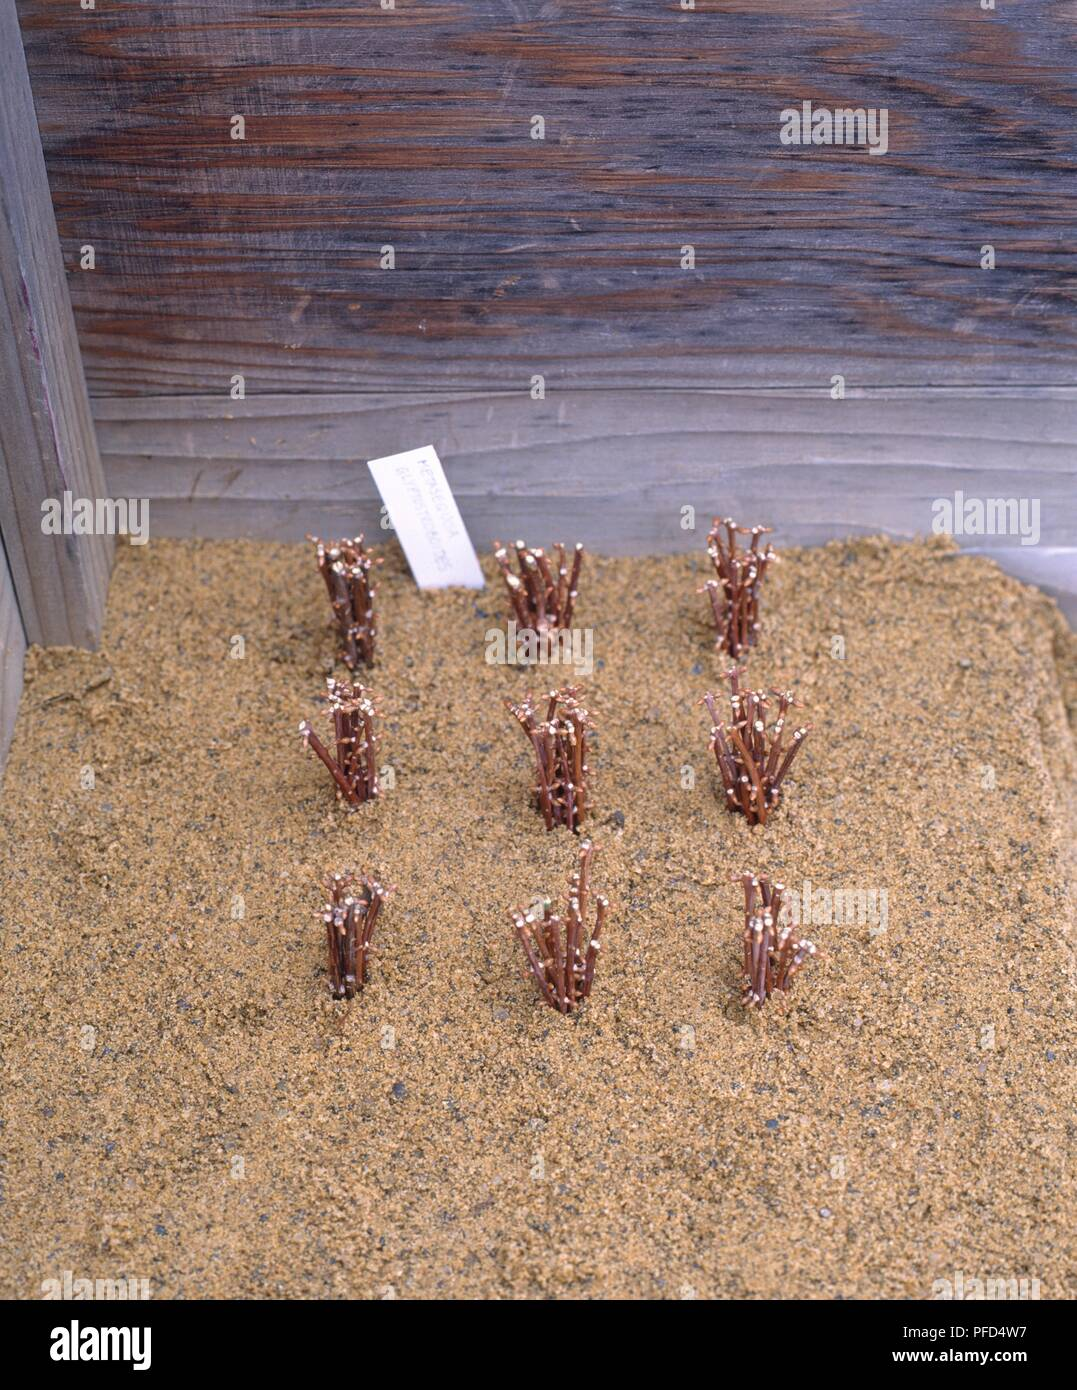 Bundles of Metasequoia (Dawnwood) cuttings inserted into a sand bed ...